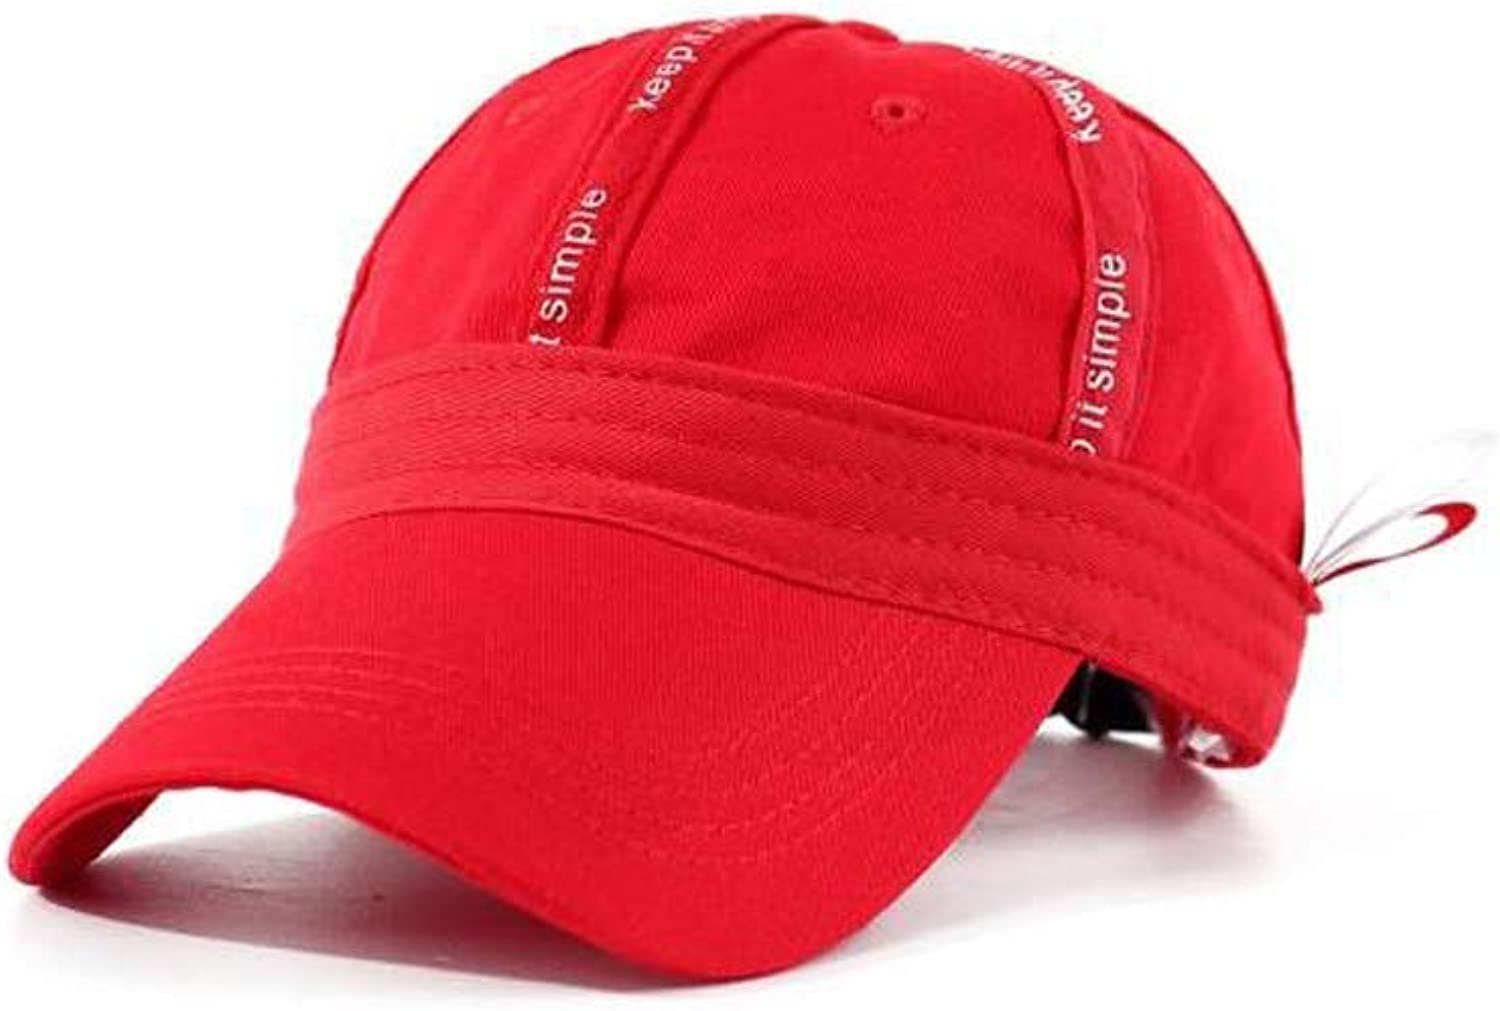 Haoyushangmao Hat, Fashion Men's and Women's Dome Baseball Cap, Outdoor Sports Cap, Red 17  7.5CM, Perimeter 5659CM, The for Friends and Family Excellent Quality